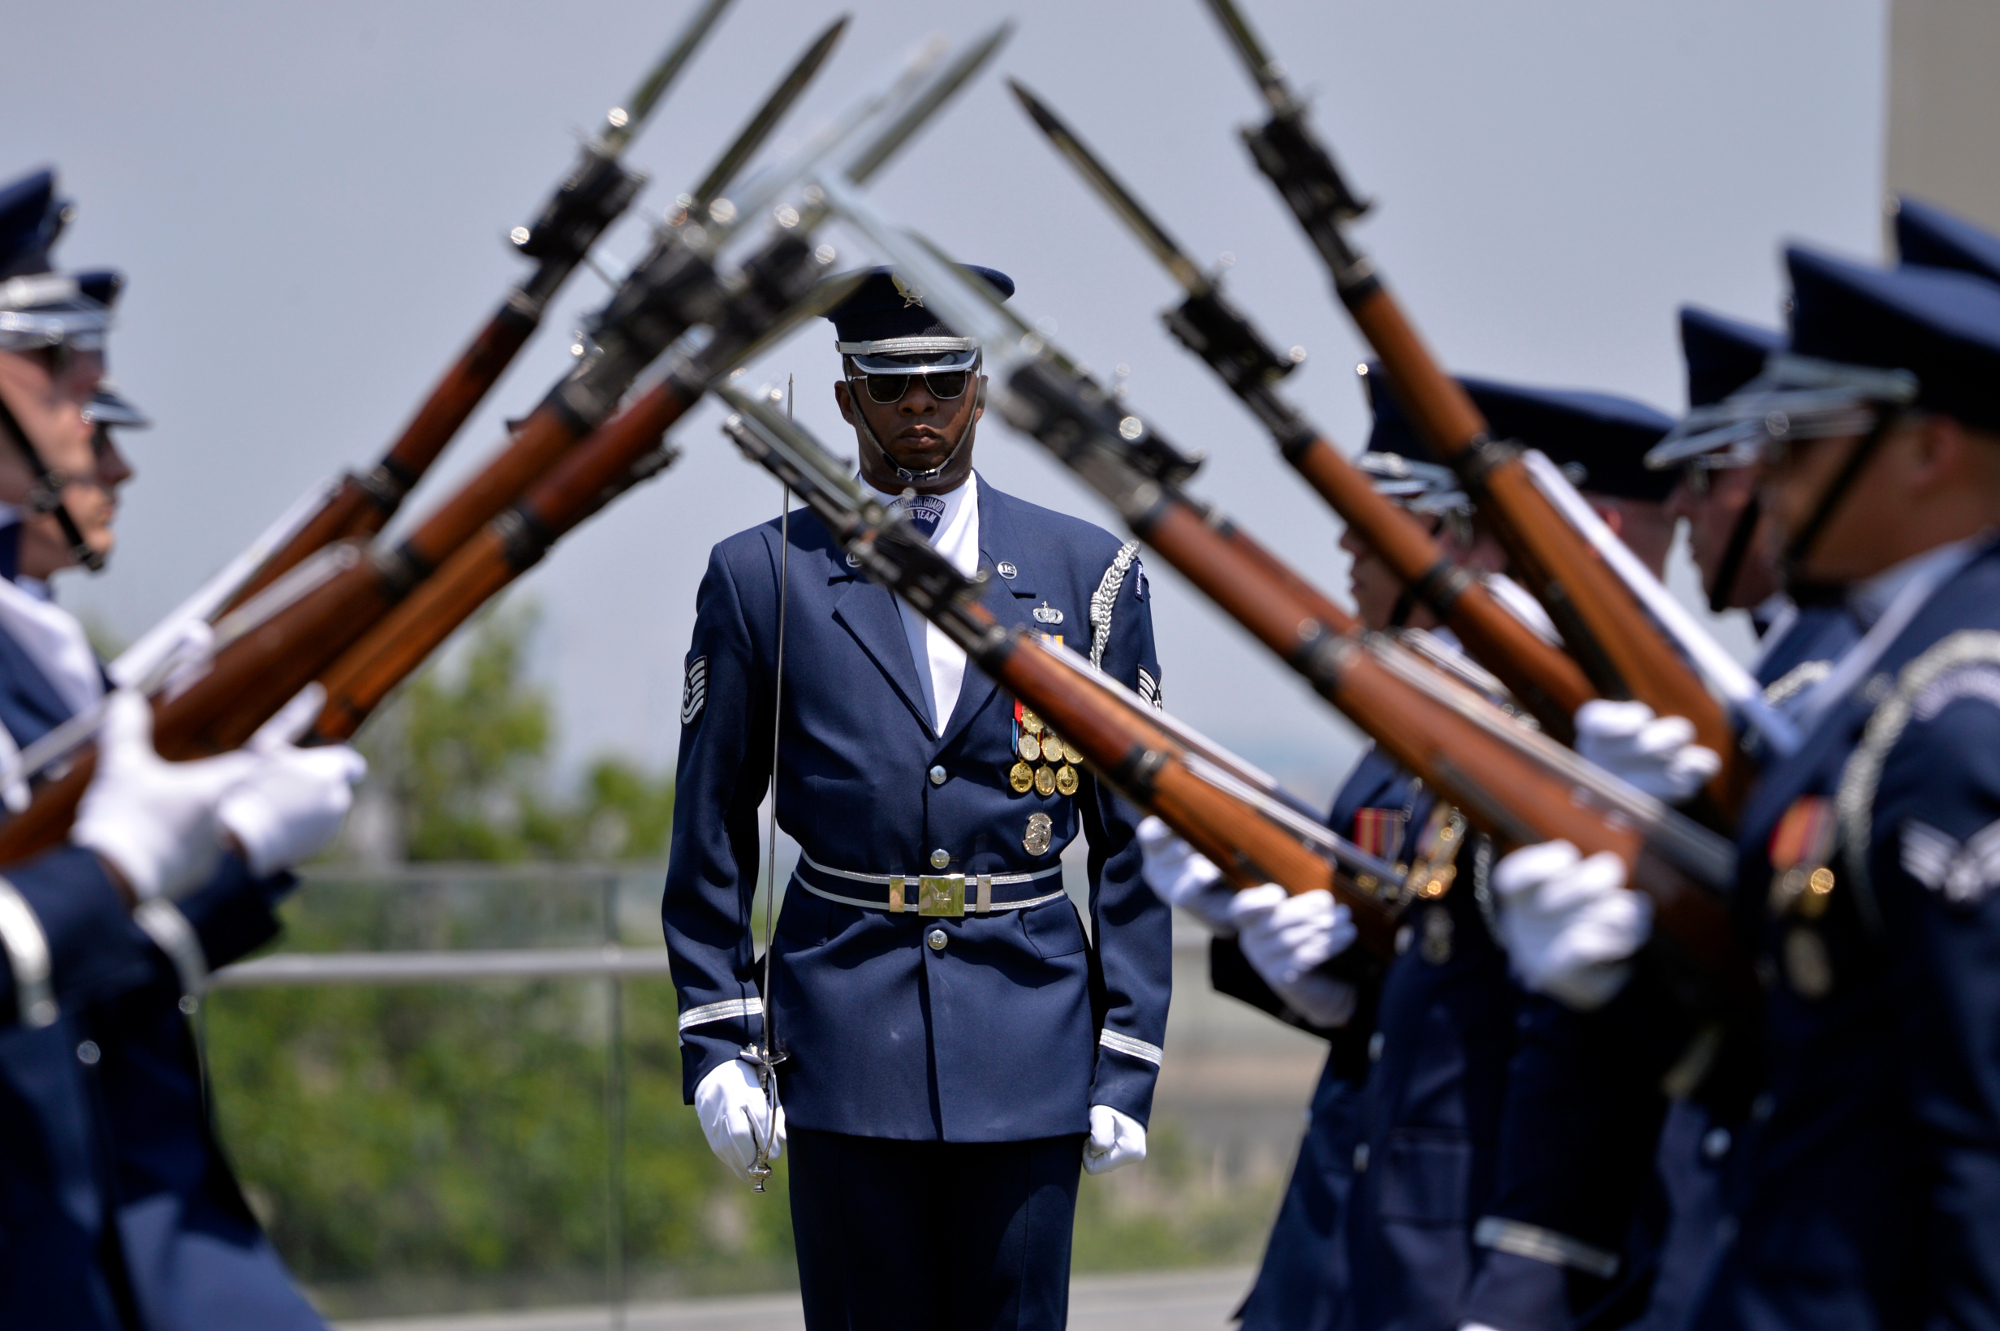 <b>The U.S. Air Force Honor Guard Drill Team is sure to inspire with intricate drills using 11-pound fixed-bayonet M-1 Garand service rifles that can rotate at up to a velocity of 40 miles per hour mere inches from their bodies. The rifles and the bayonets are real!